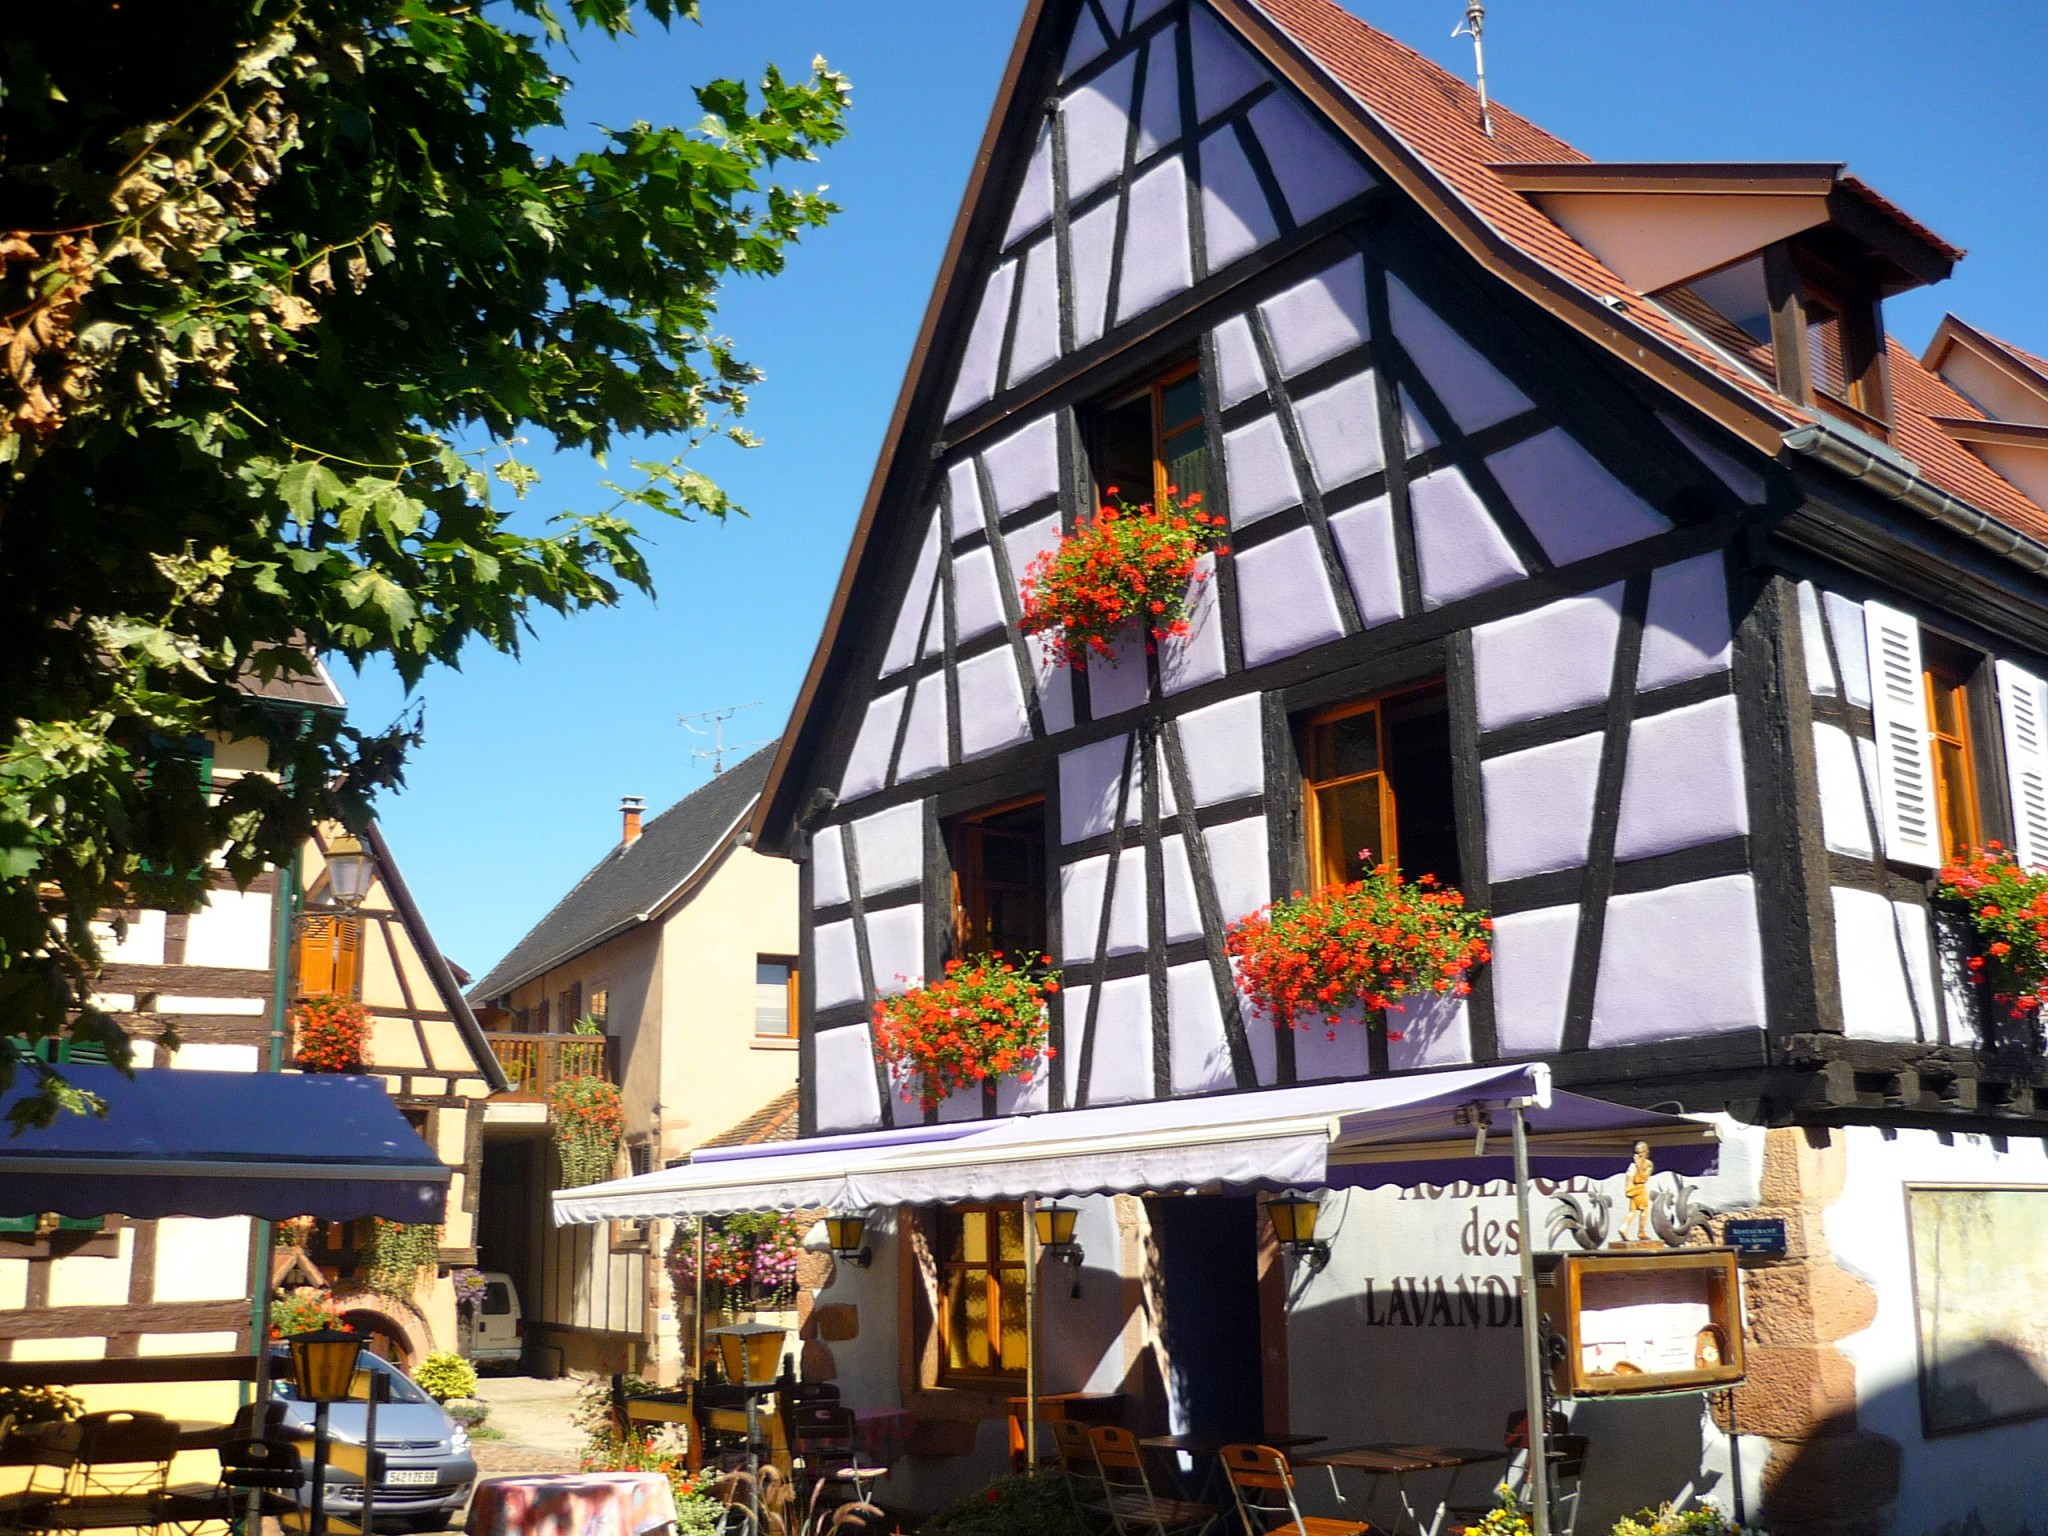 Half-timbered house in the village of Bergheim © French Moments